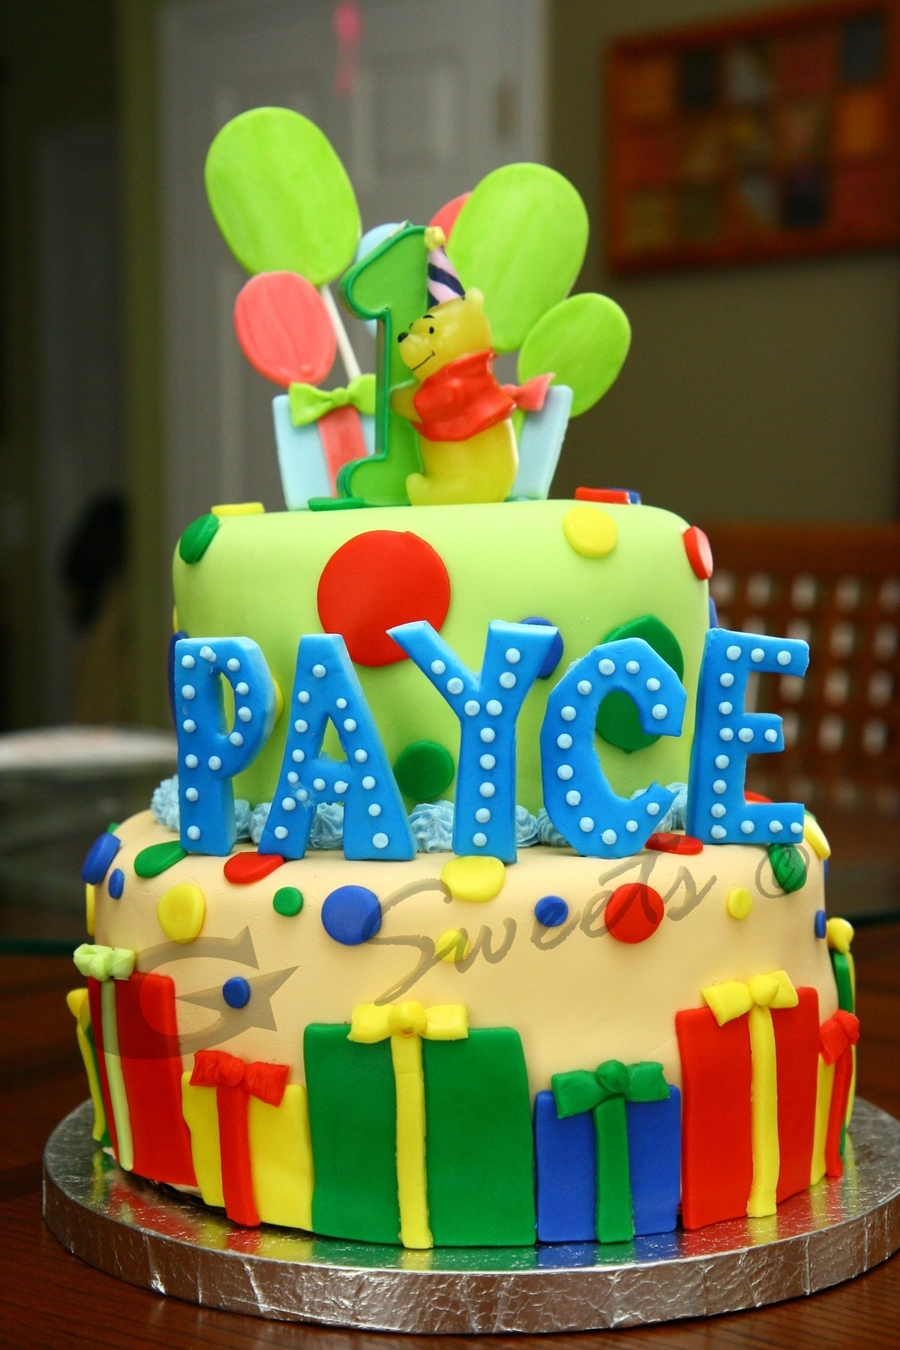 Winnie The Pooh Balloons And Gifts Theme - CakeCentral.com